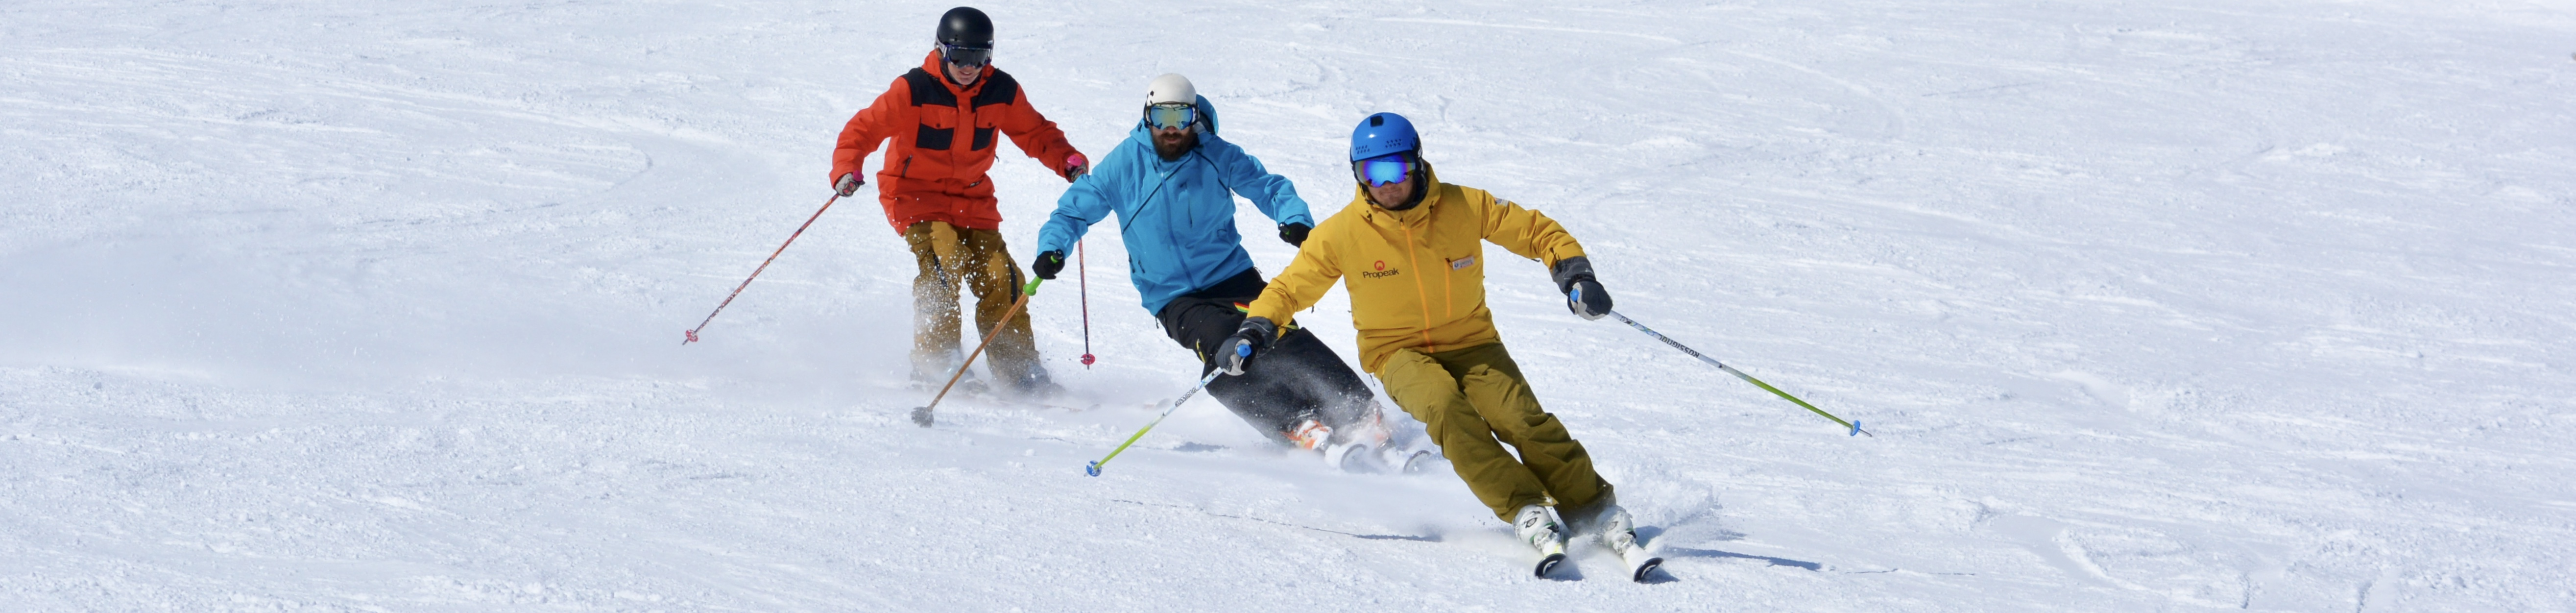 We Are Sno ski instructor course students skiing